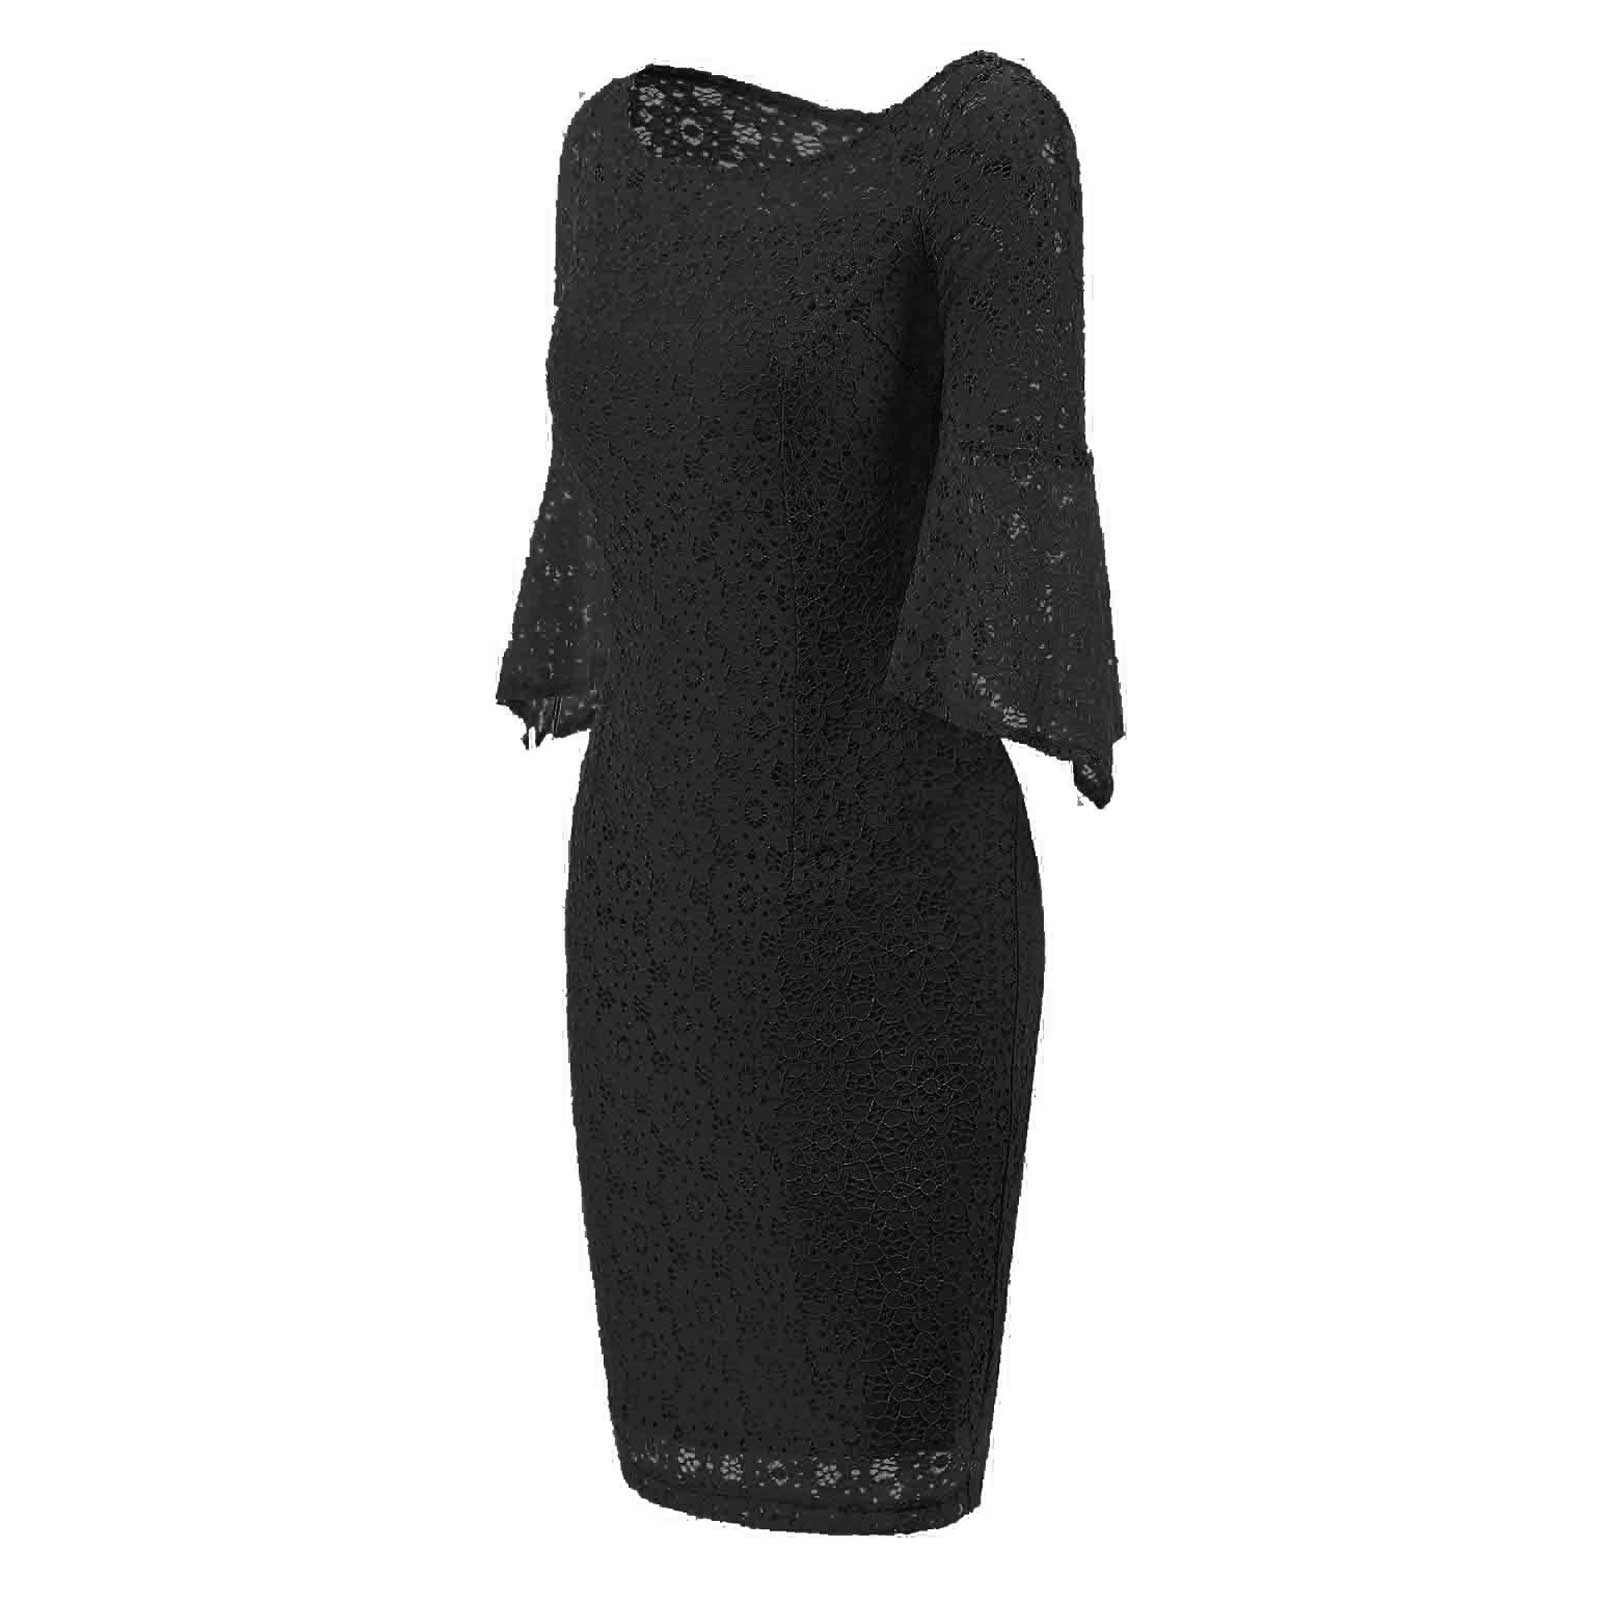 Sexy Women Bell Sleeve Lace Party Cocktail Bodycon Sheath Dress ...